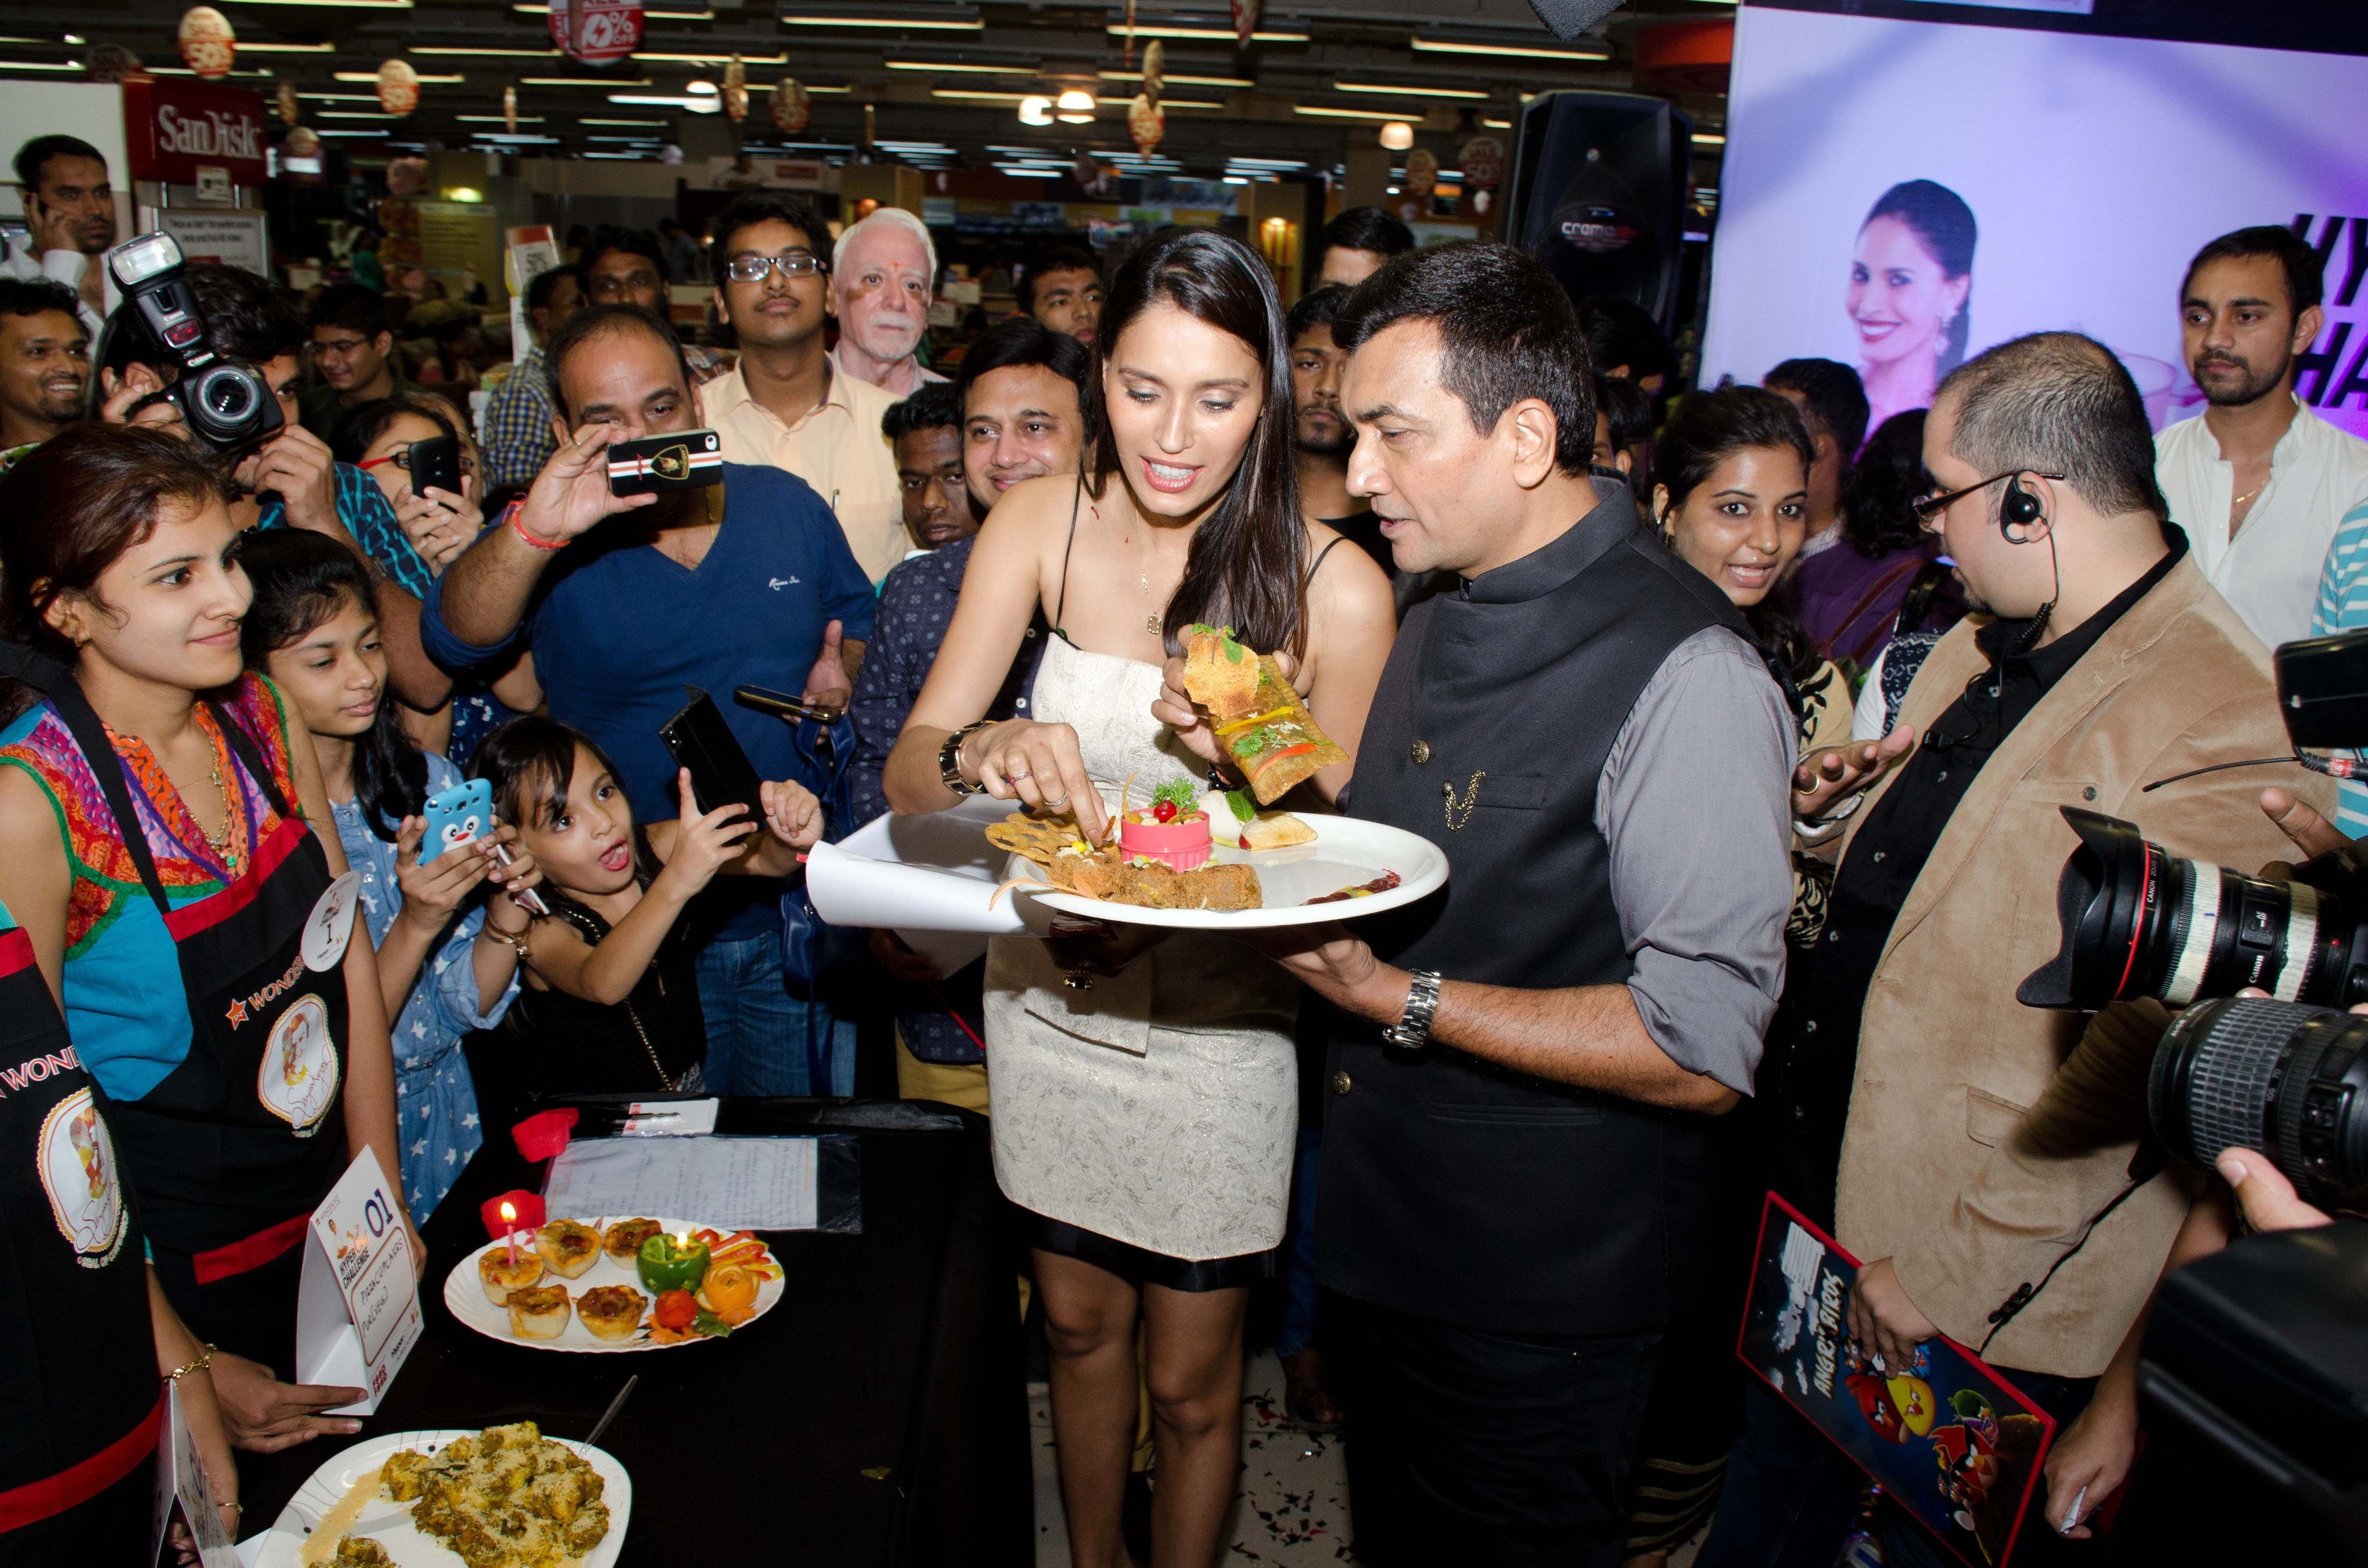 (L-R) Supermodel Ujjwala Raut and Chef Sanjeev Kapoor at HyperCITY HyperChef Challenge Food Tasting Session